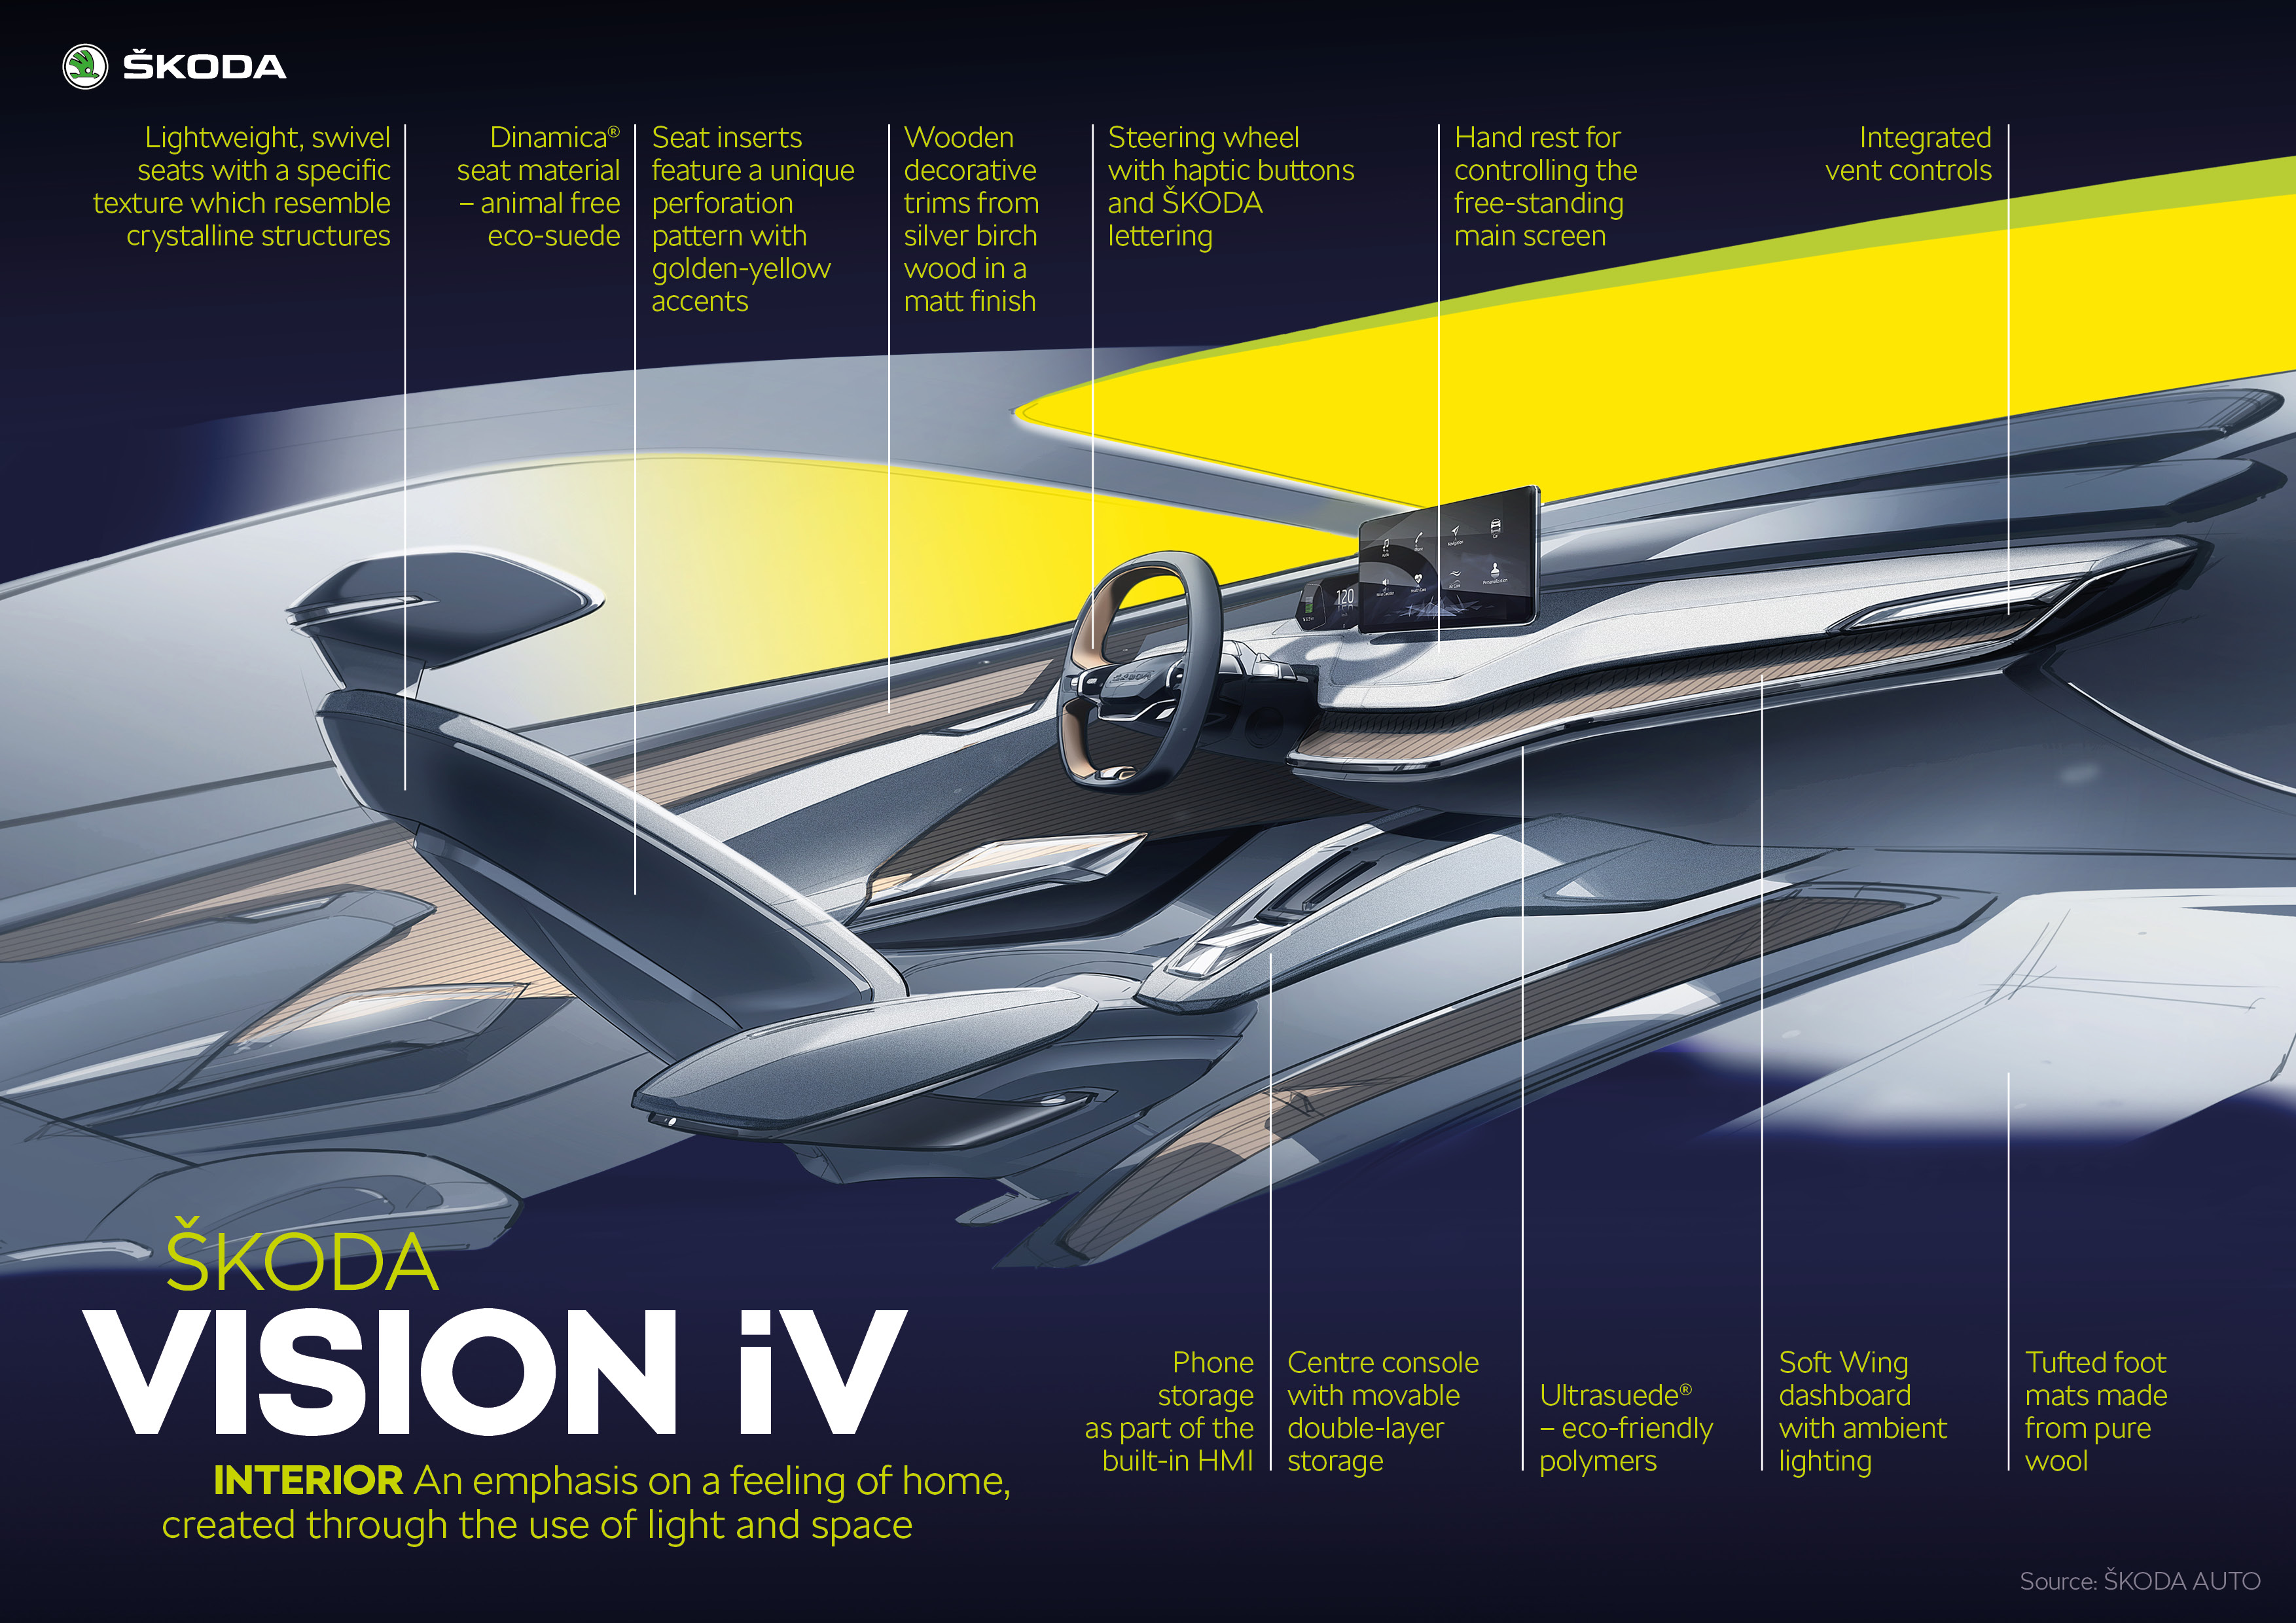 Koda Vision Iv Offers A Look Ahead At The Brand S